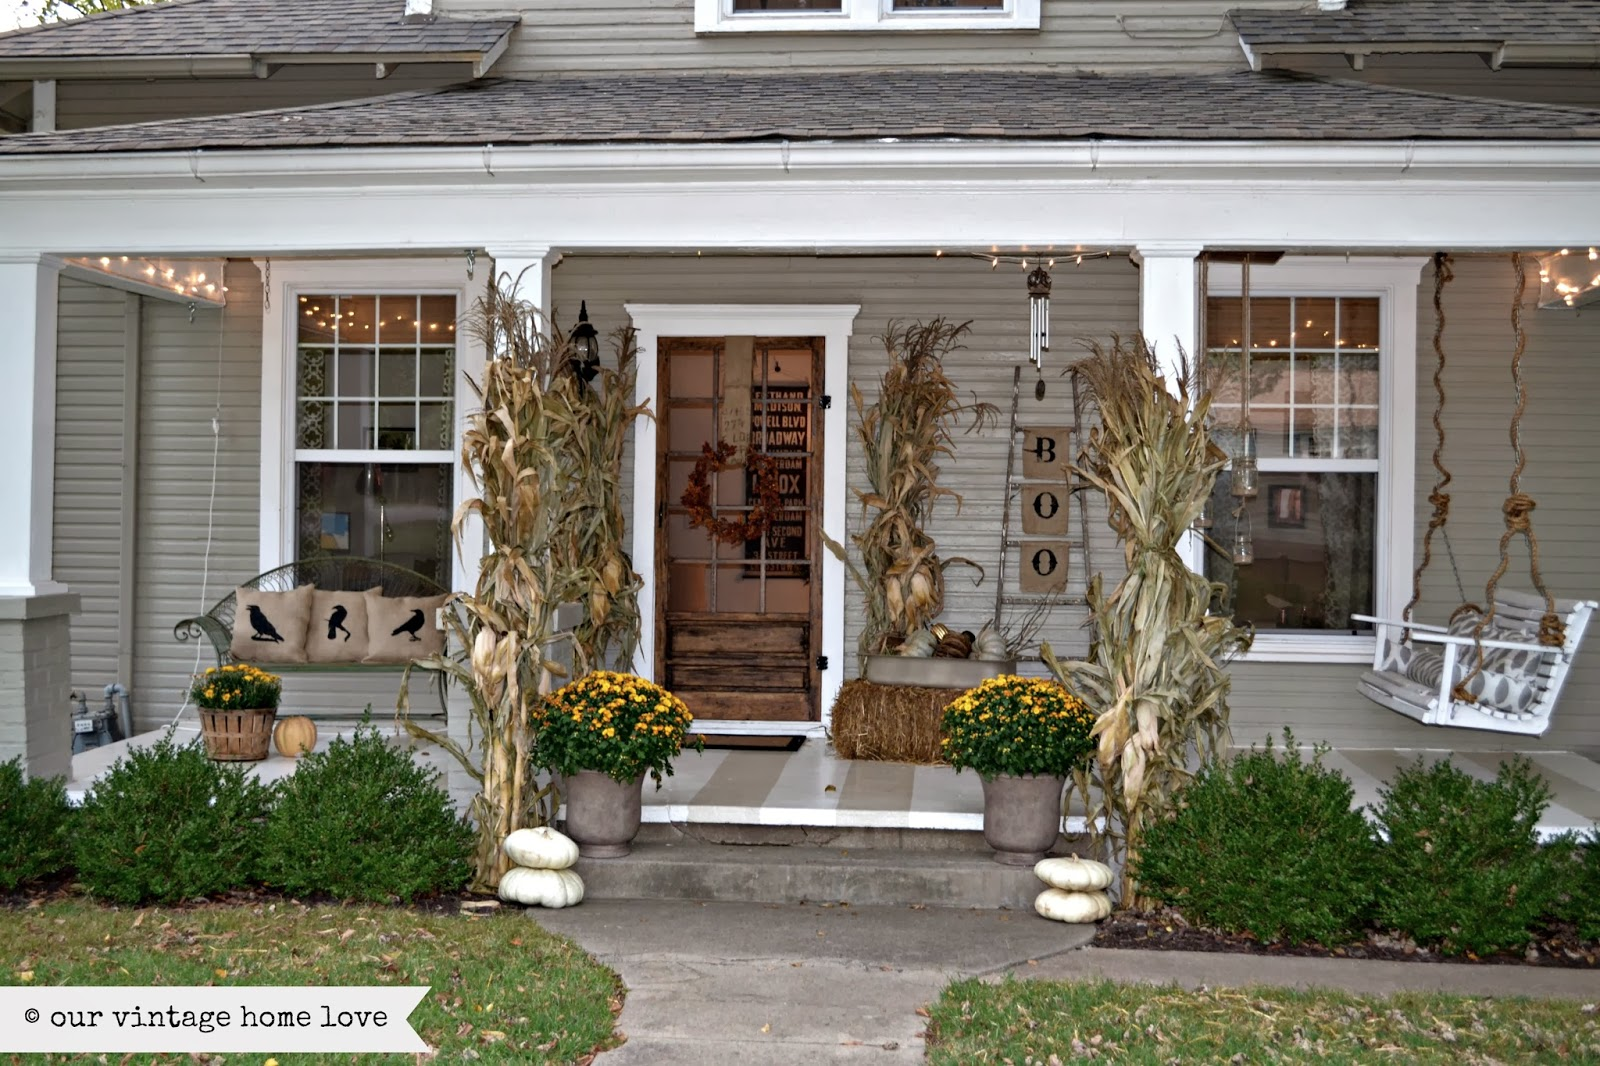 Front Porch Ideas Vintage Home Love: Fall Porch Ideas